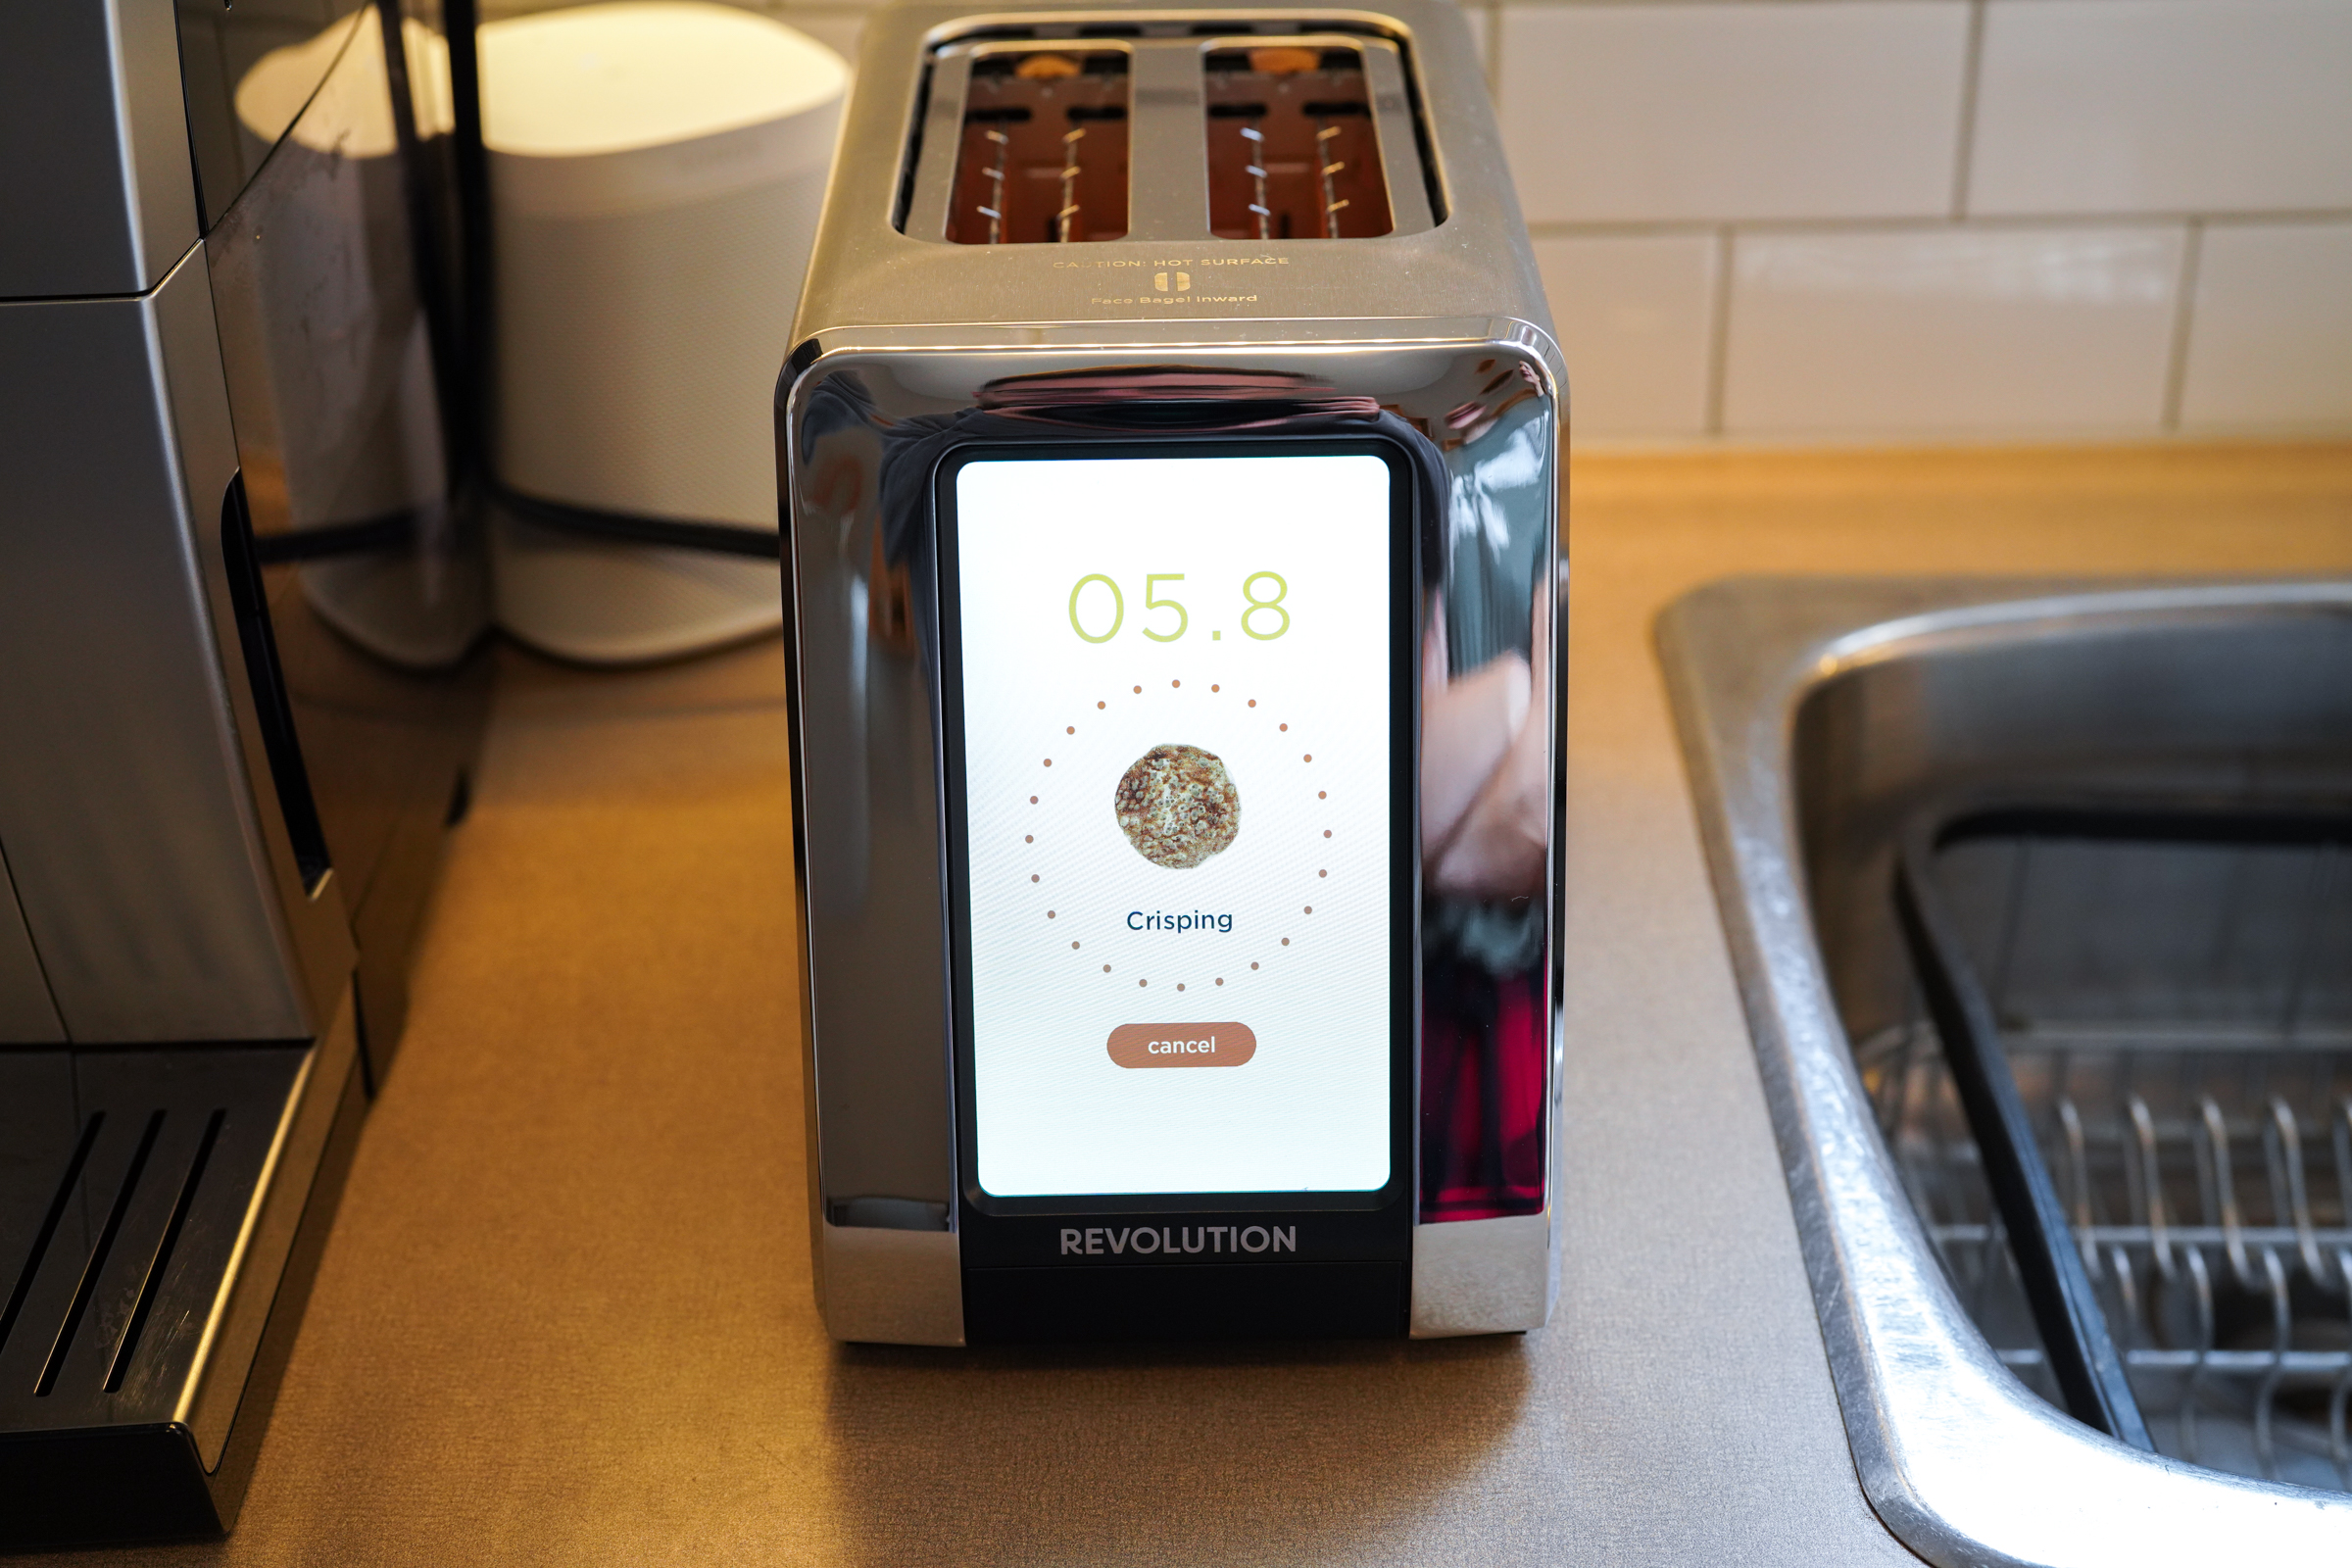 Revolution Cooking's R180 Smart Toaster delivers smarter, faster toasting – for a price – TechCrunch